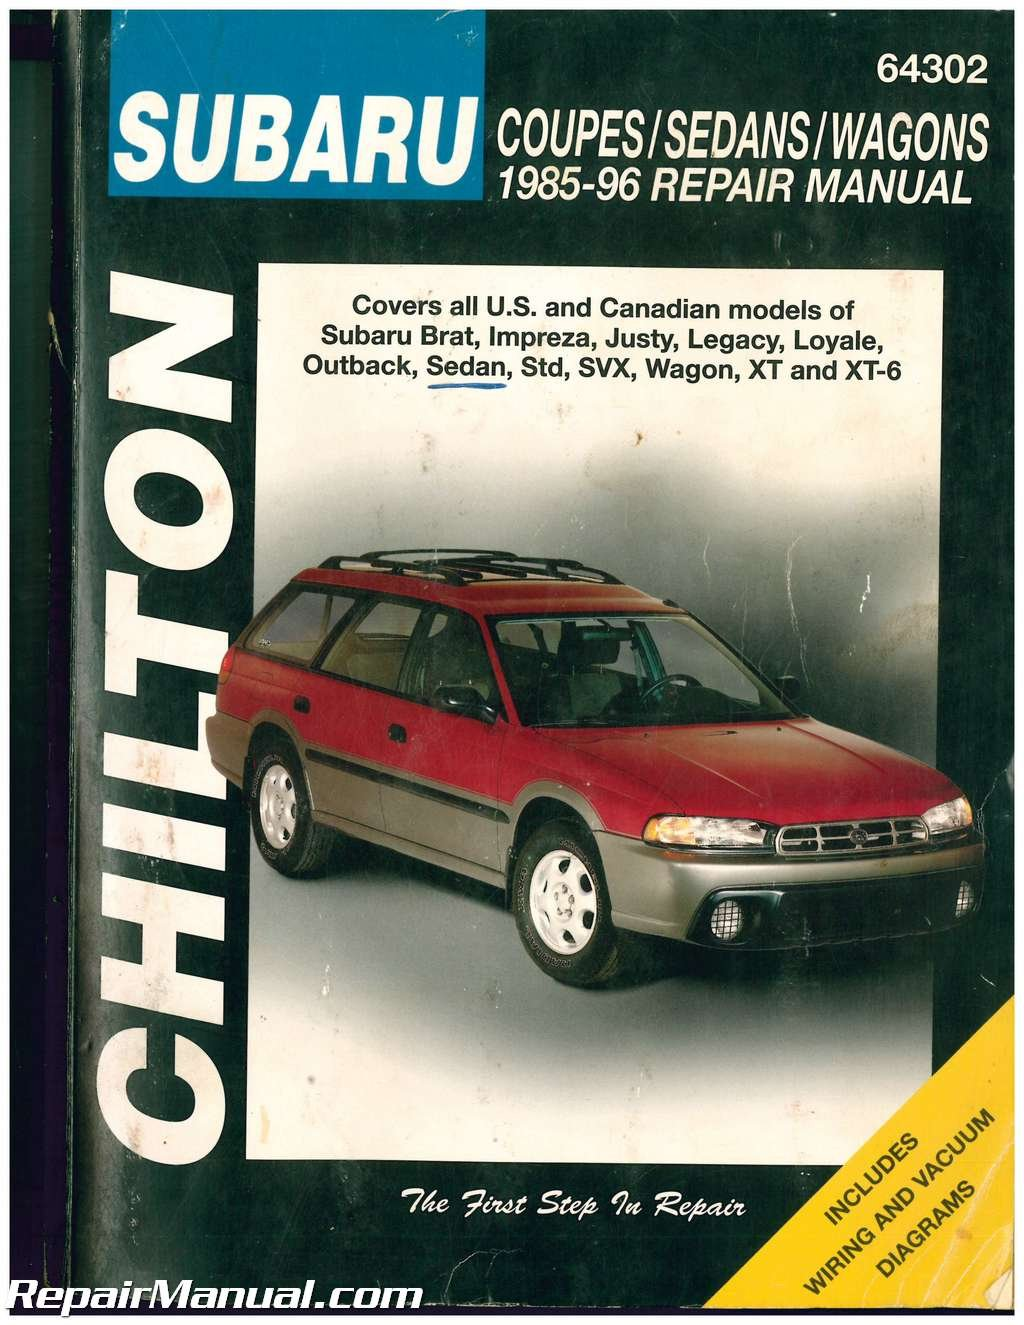 Uch64302 Used Subaru Brat Impreza Justy Legacy Loyale Outback Sedan Wiring Schematic Std Svx Wagon Xt 6 1985 1996 Repair Manual Manufacturer Books